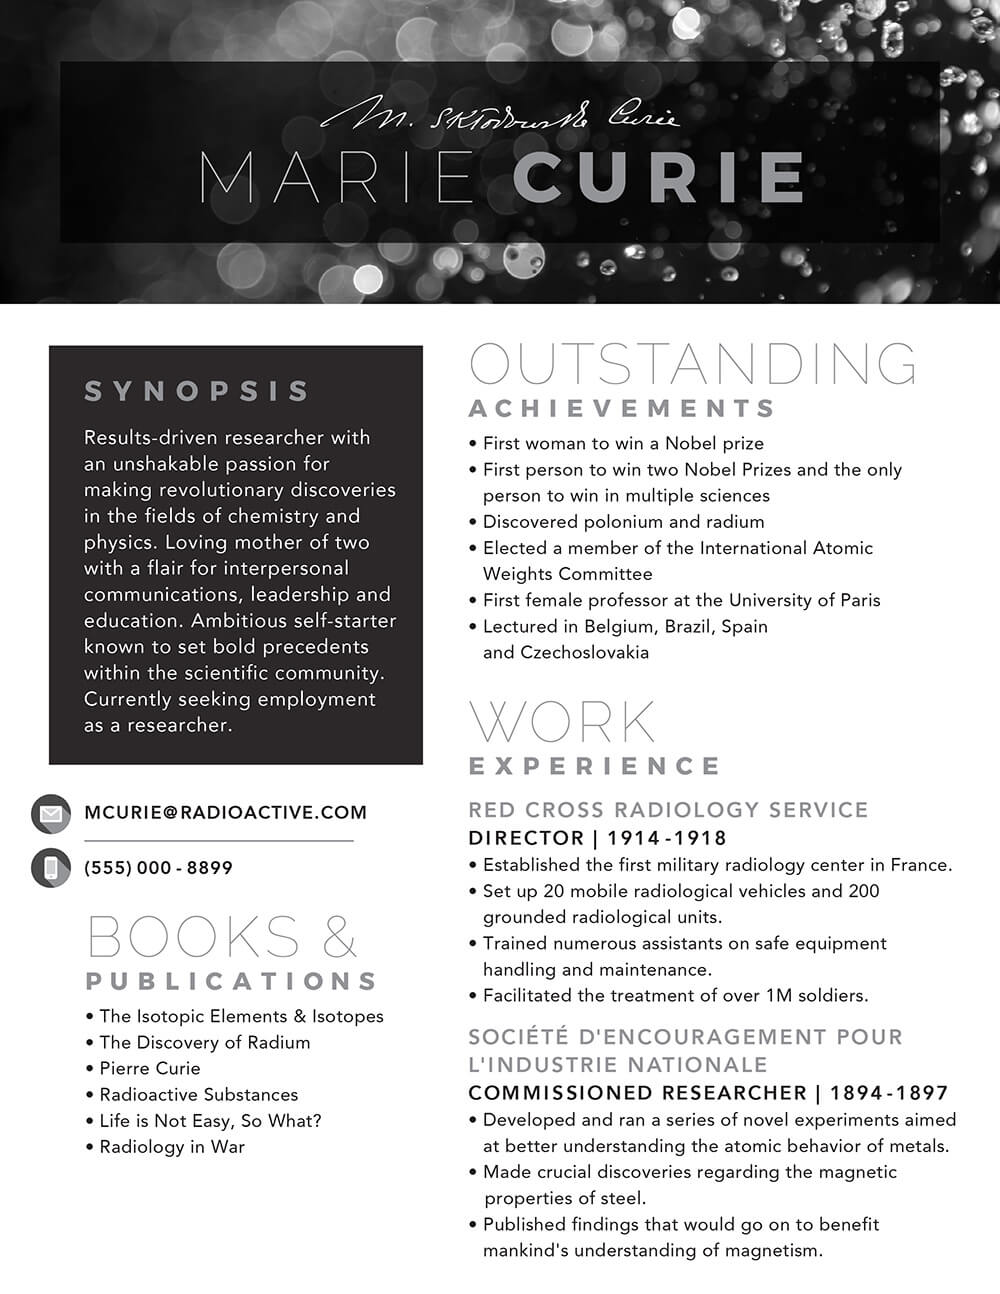 Marie Curie's Resume